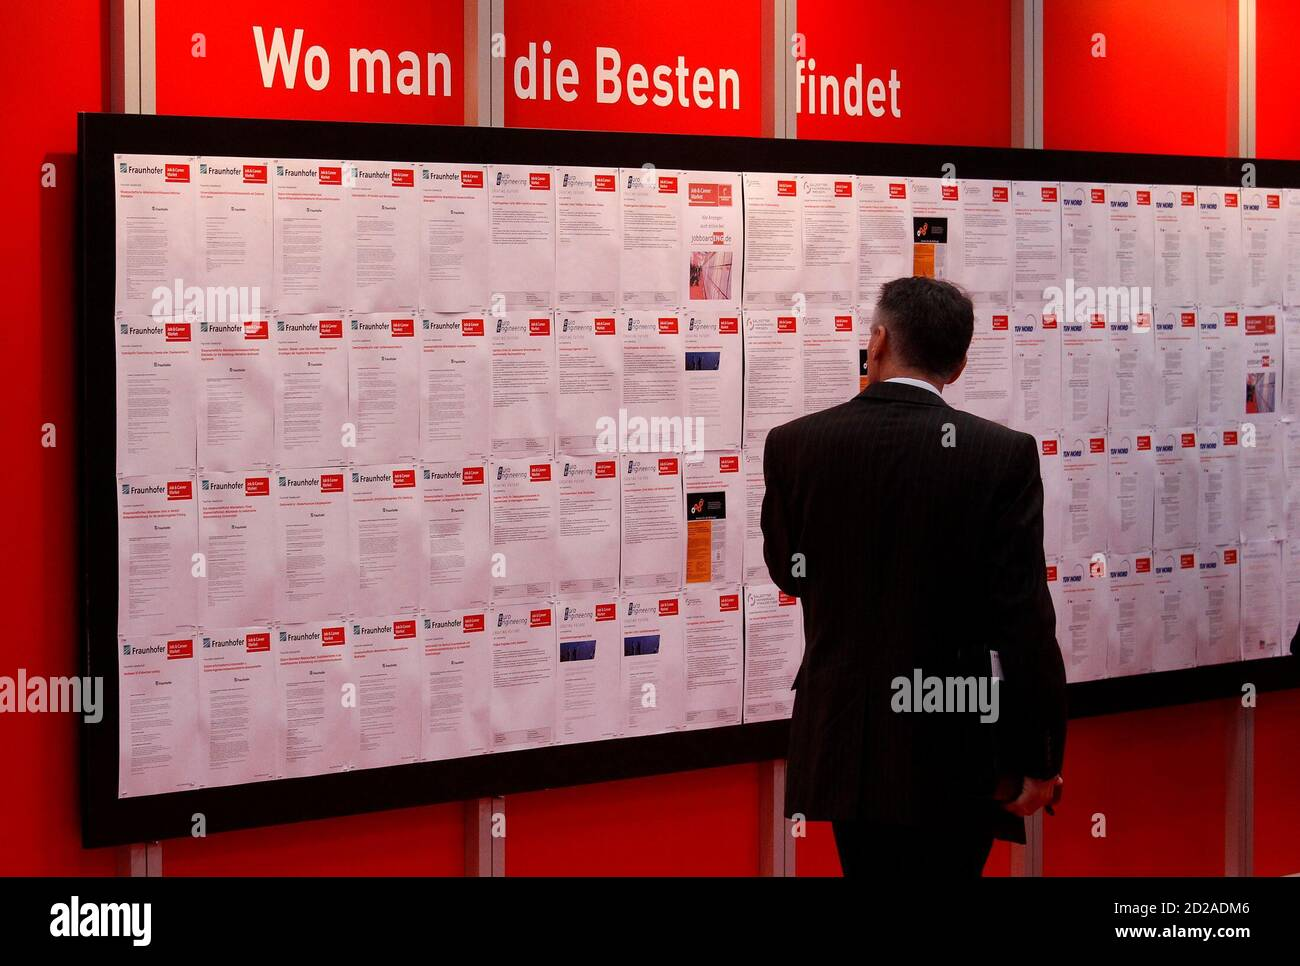 """A man read job offers during the first day of the """"Hannover Messe"""" industrial trade fair in Hanover April 19, 2010. The world's leading fair for industrial technology, with about 4,800 exhibitors from 63 nations, runs till April 23 with Italy as this year's partner country. The slogan reads: Where you can find the best!.     REUTERS/Tobias Schwarz     (GERMANY - Tags: SCI TECH) Stock Photo"""